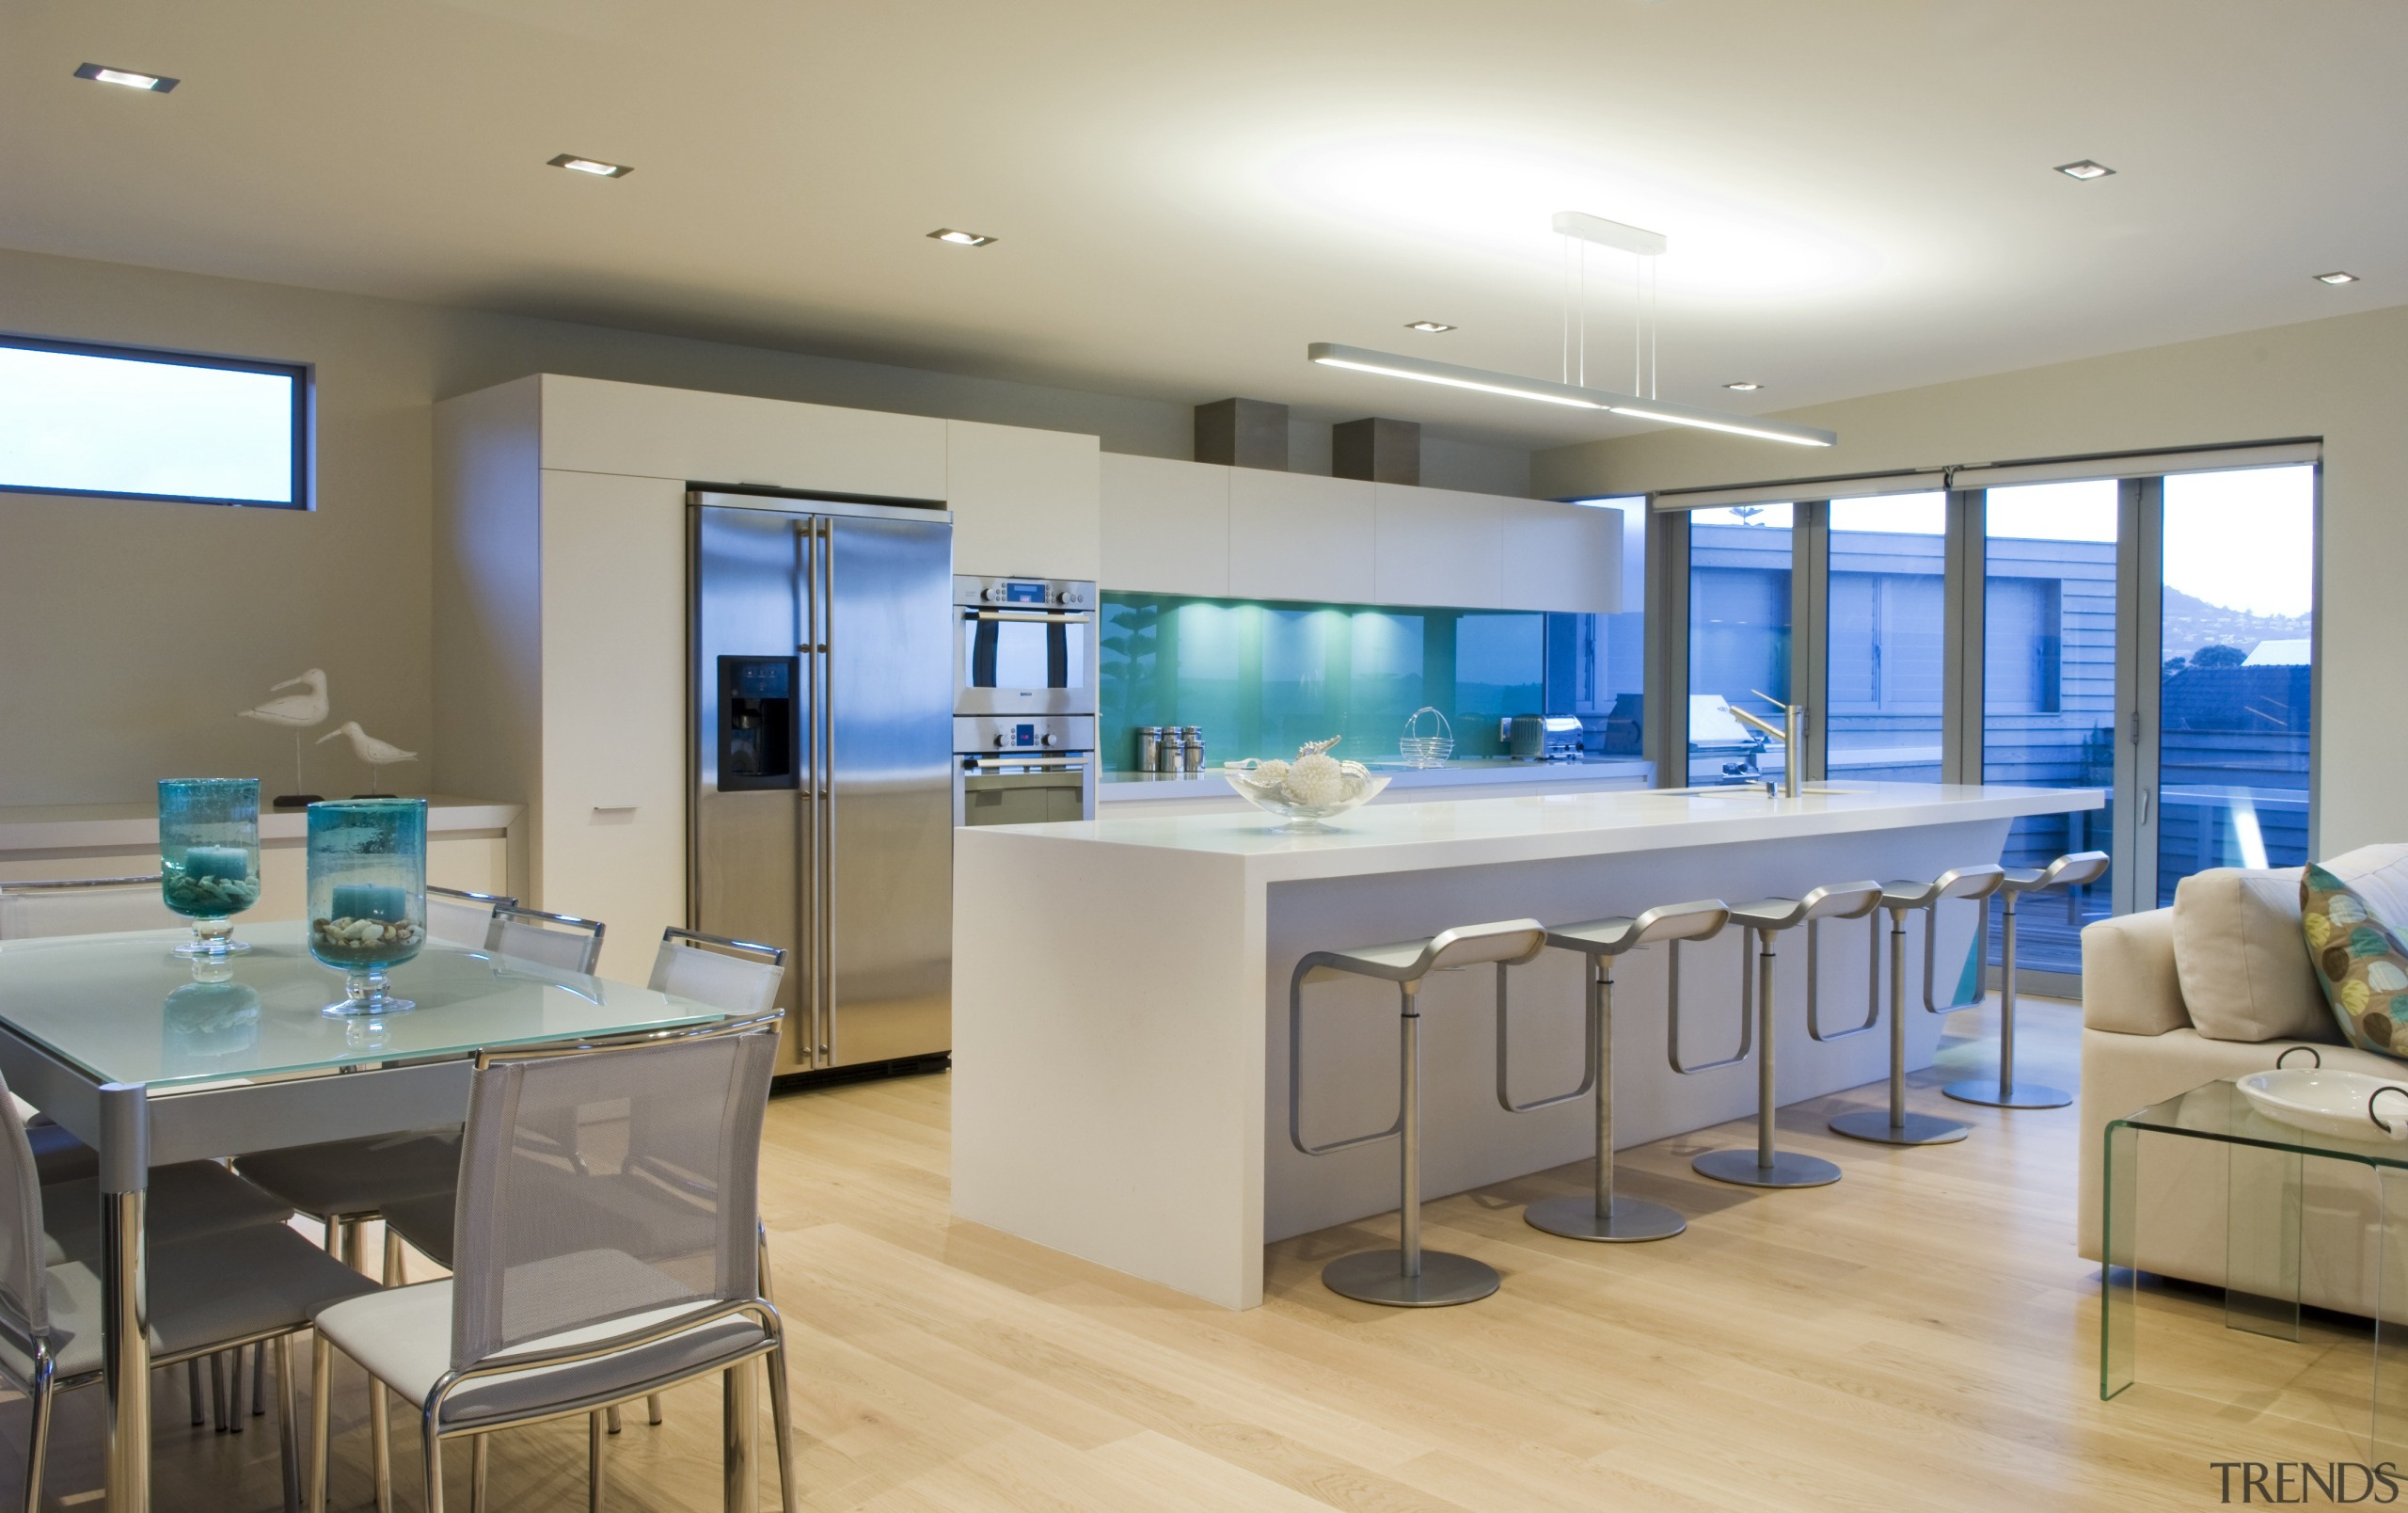 This sleek kitchen in a beach house    - Gallery - 1 | Trends